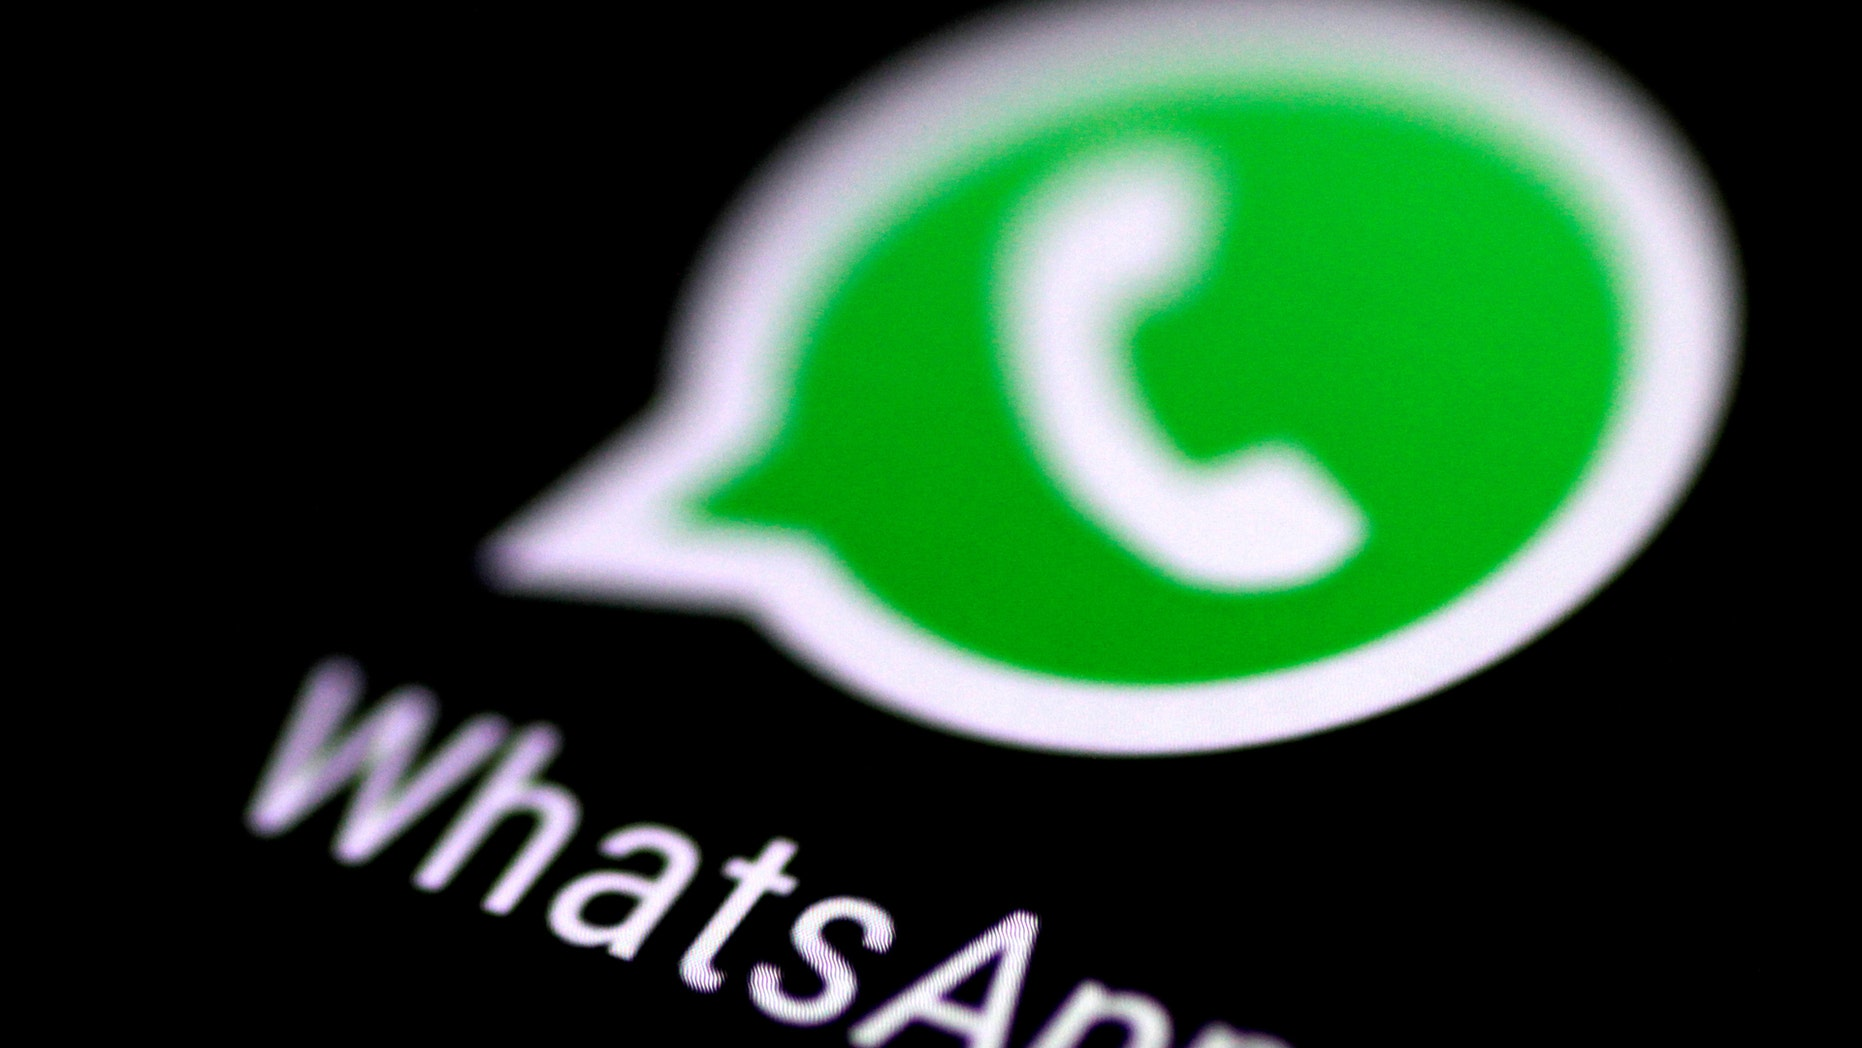 File photo: The WhatsApp messaging focus is seen on a phone shade Aug 3, 2017. (REUTERS/Thomas White)